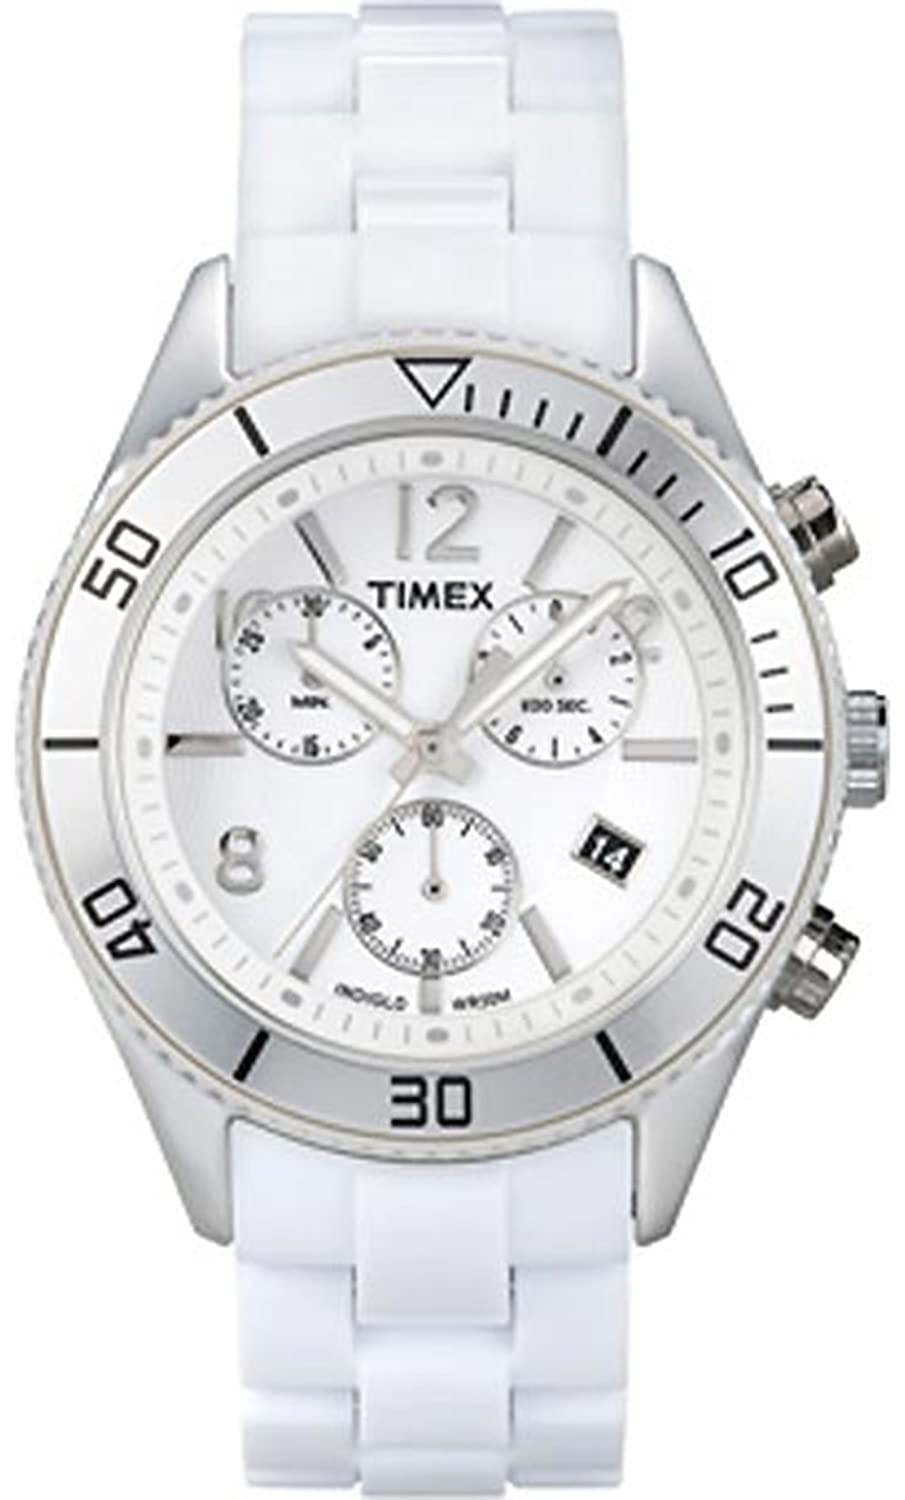 Amazon.com: Timex Originals Sport Chronograph Mens watch #T2N868: Timex: Watches